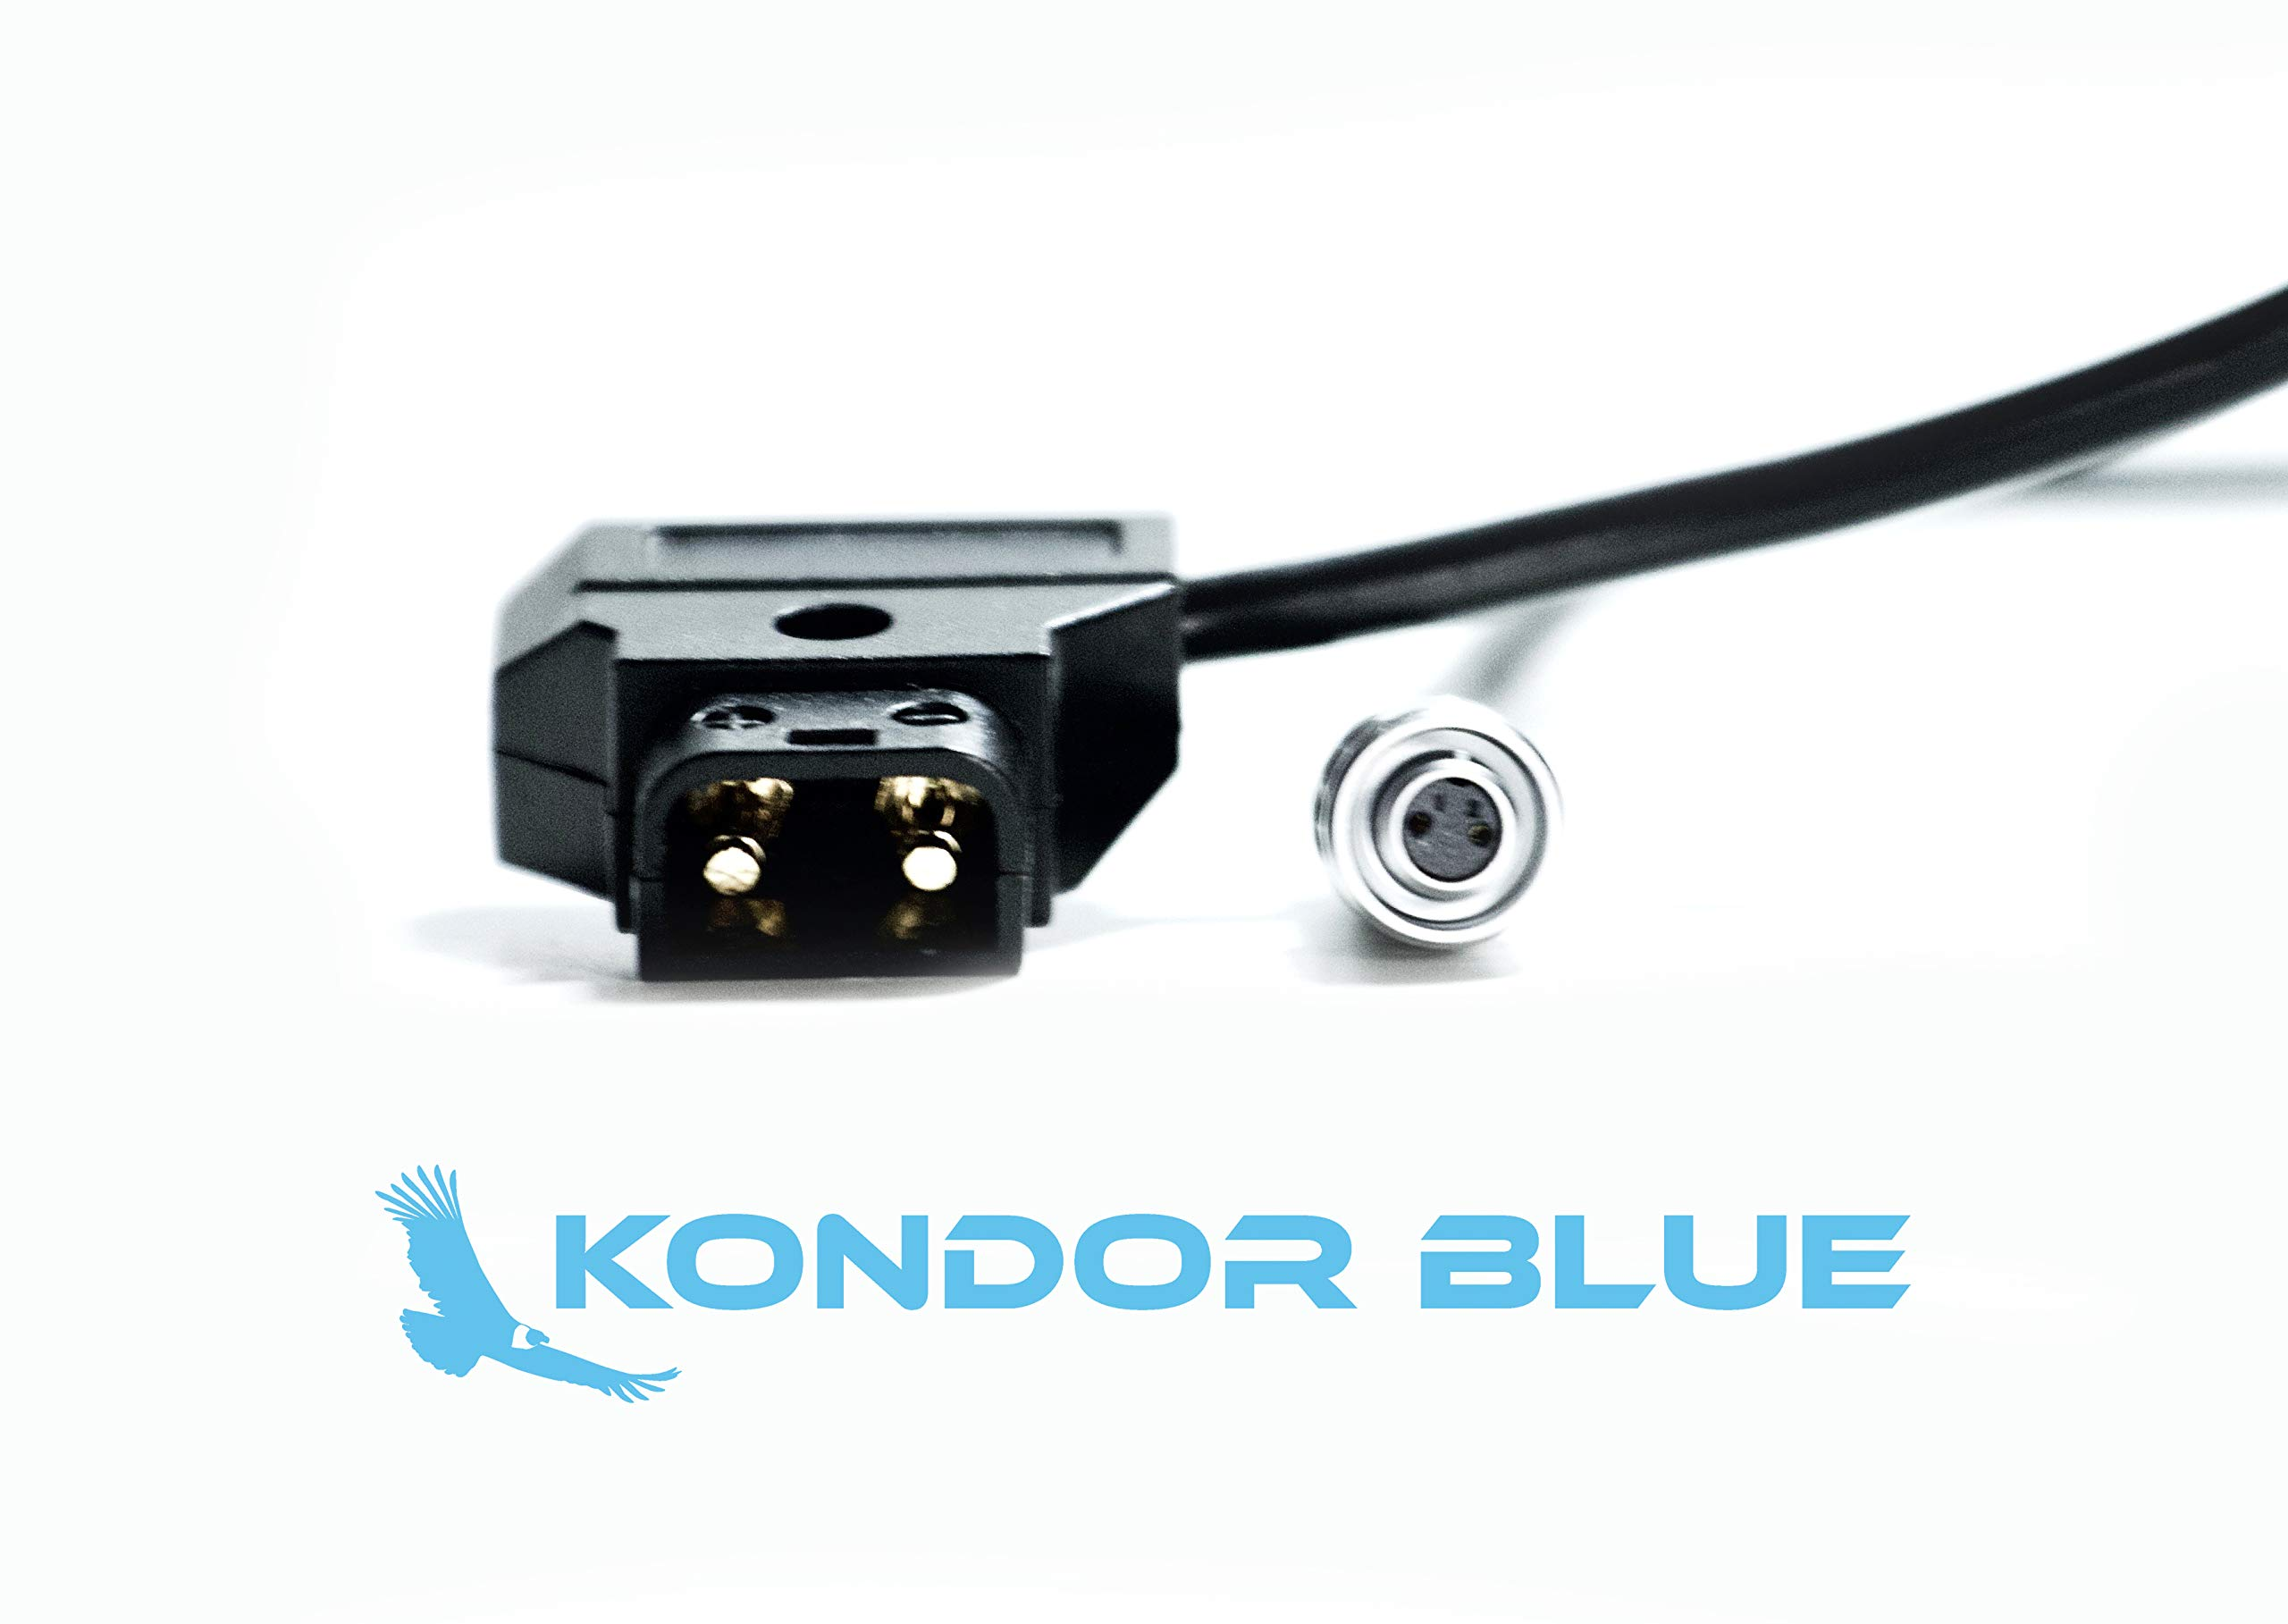 KONDOR BLUE 20'' D-Tap to BMPCC 4K Power Cable for Blackmagic Pocket Cinema Camera 4K and Gold Mount V Mount Battery P TAP Weipu